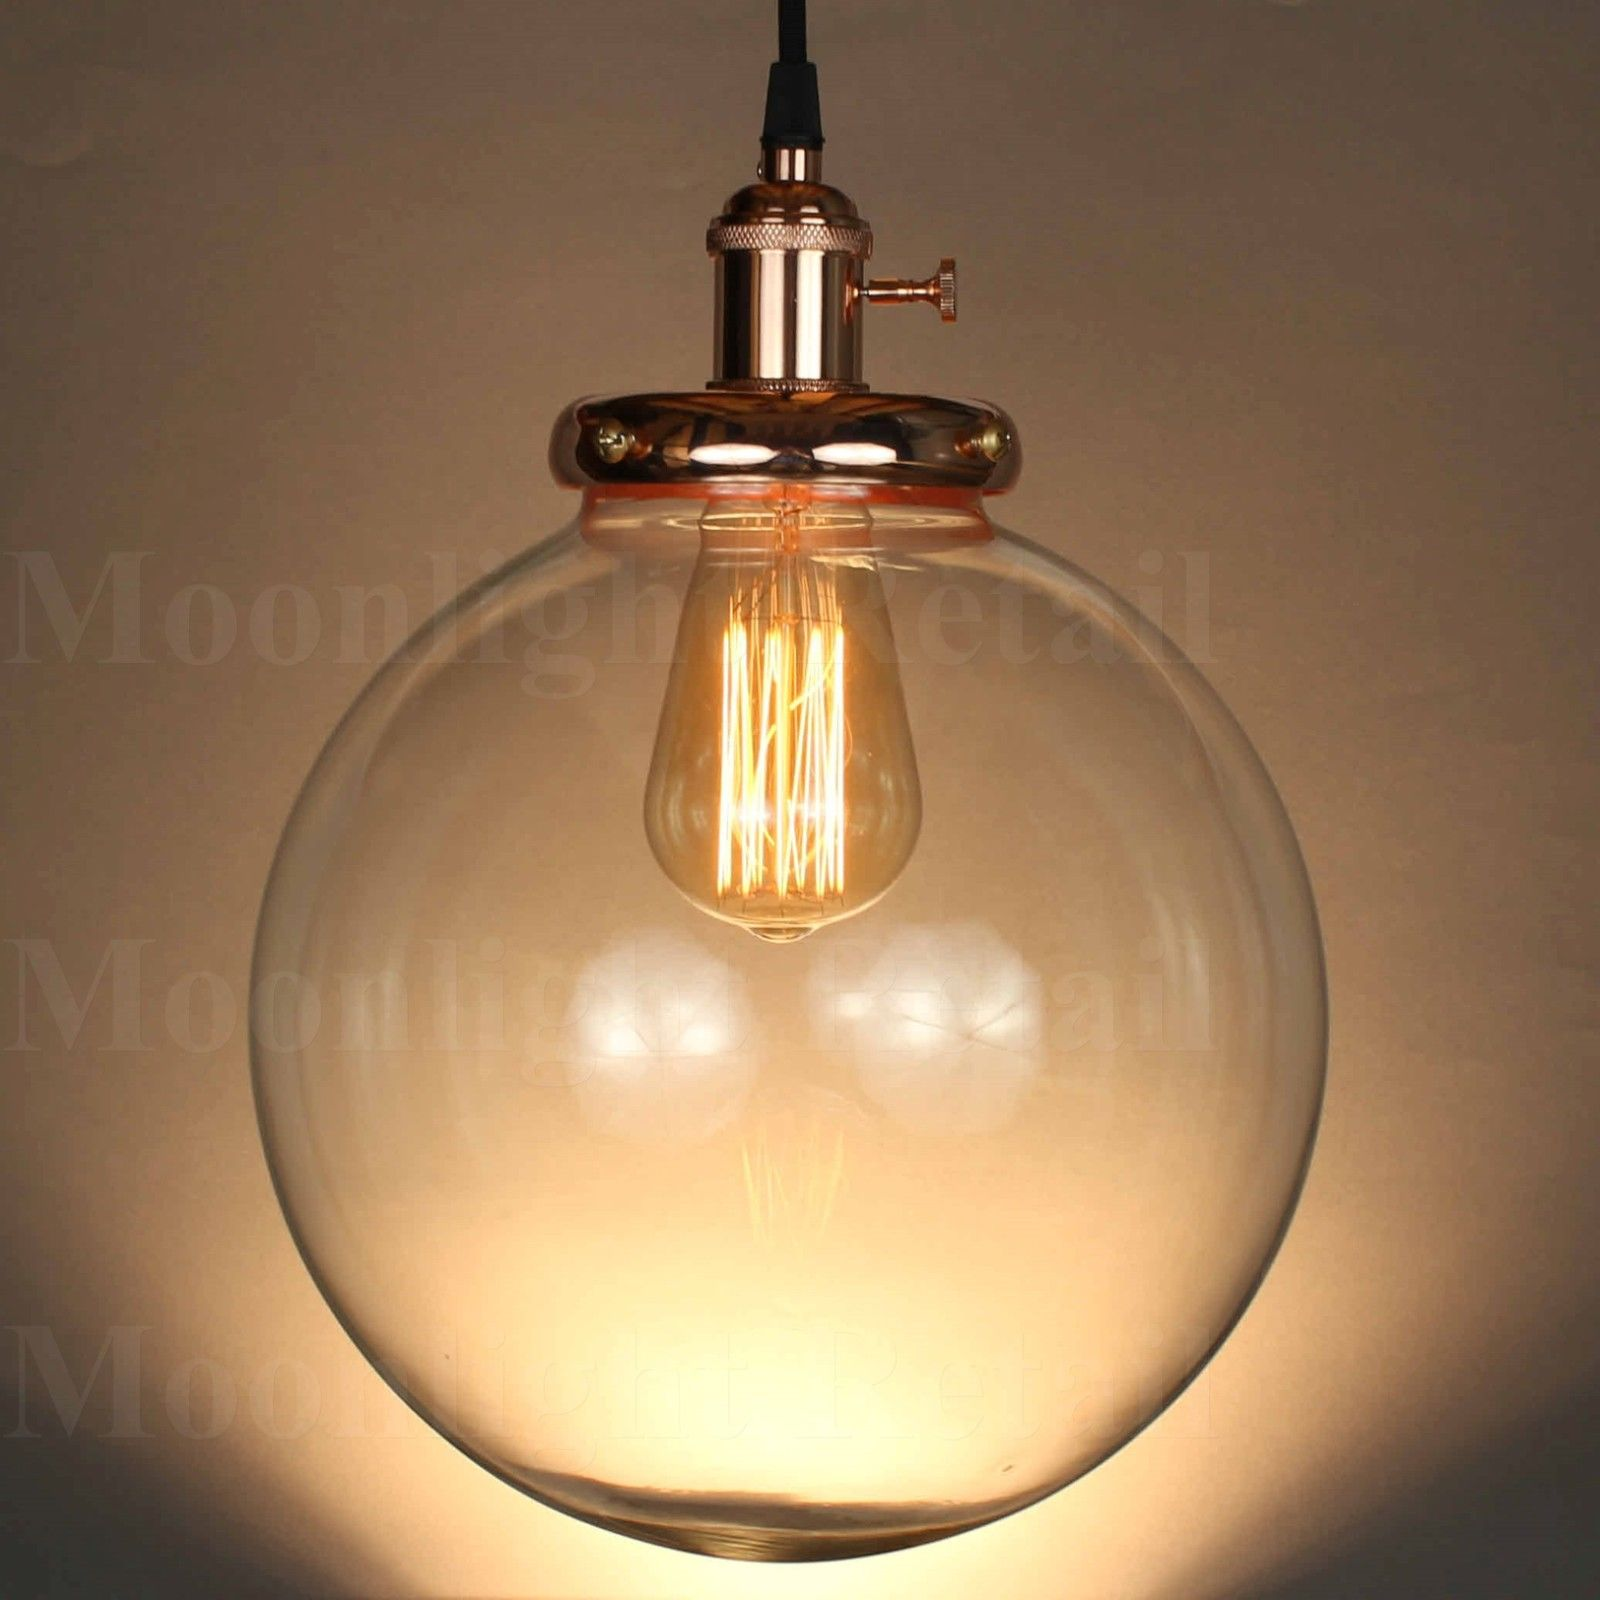 Modern Vintage Lights New Modern Vintage Industrial Retro Loft Ball Glass Shade